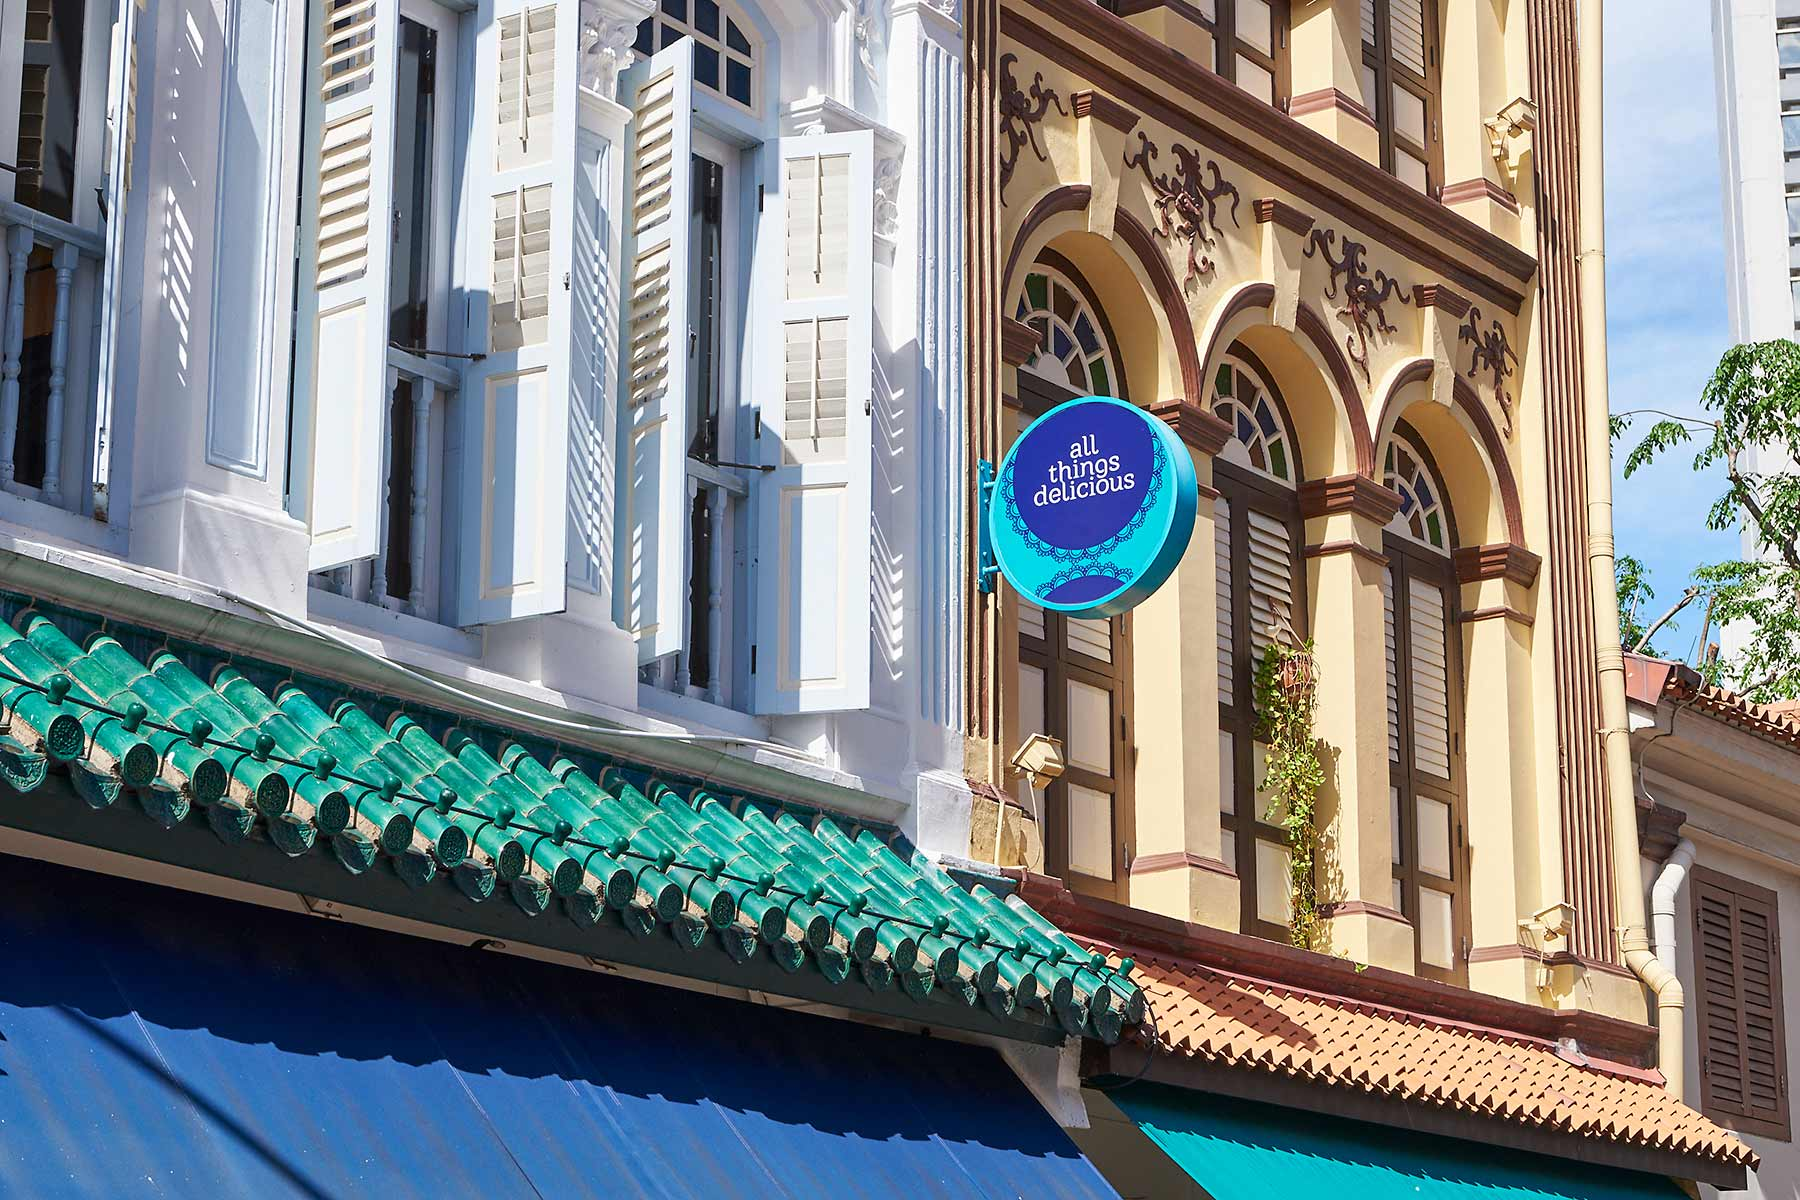 Arab Street Flagship Store restaurant front All Things Delicious